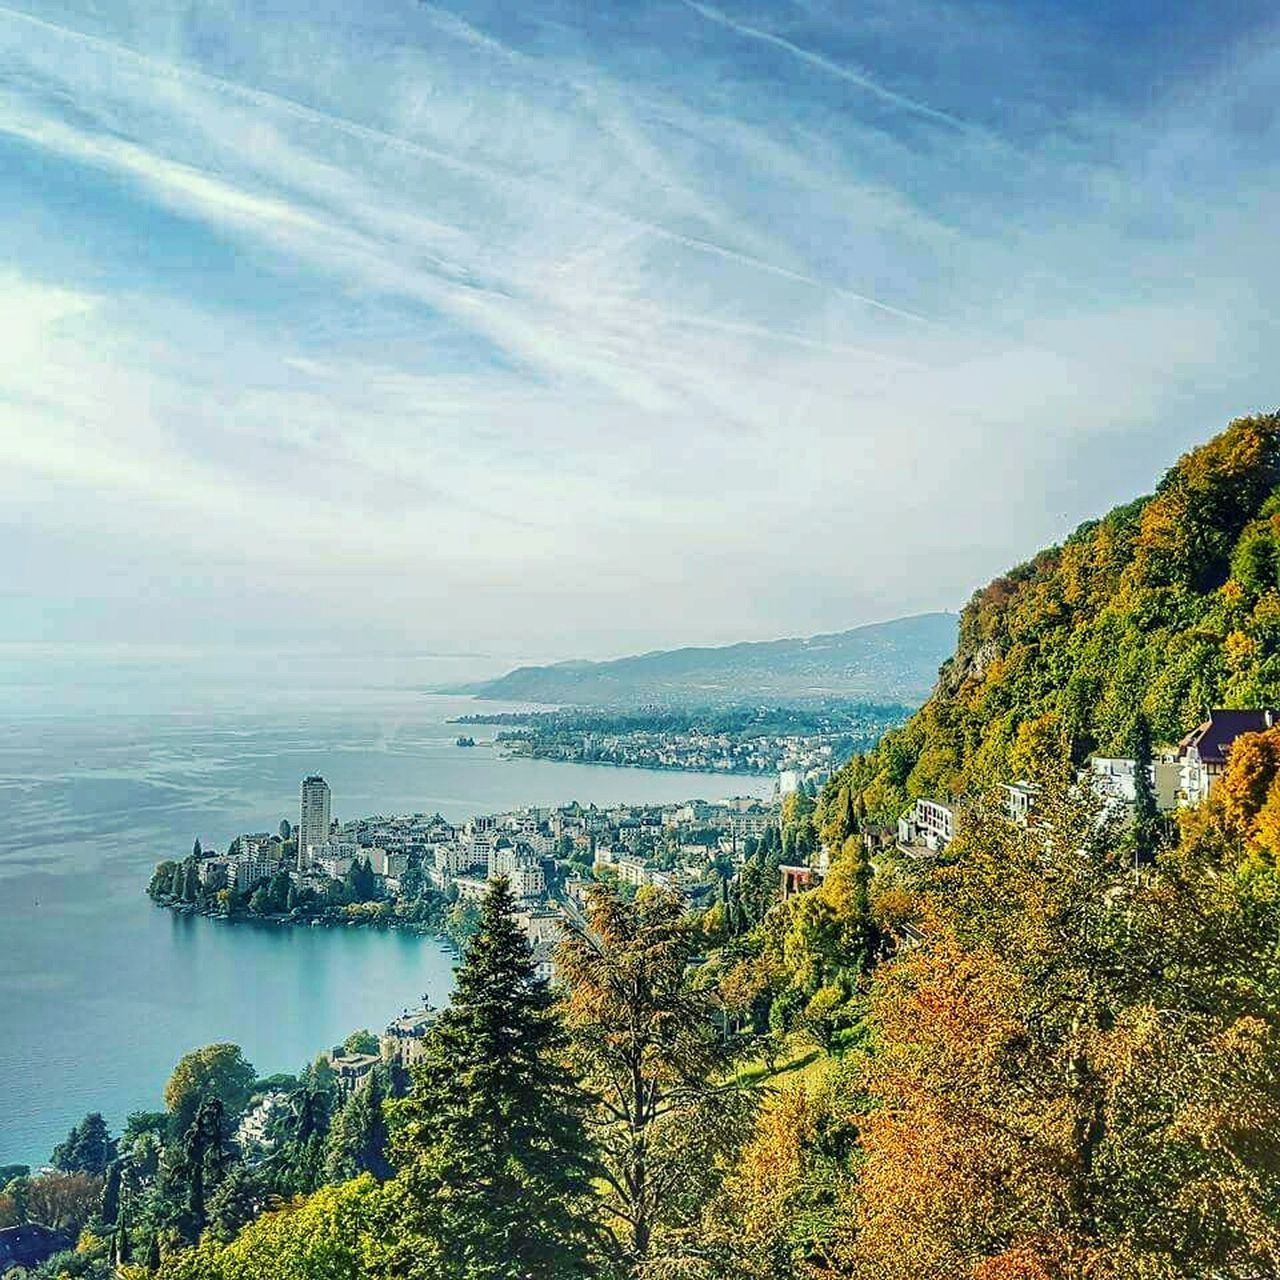 Montreux Montreux Switserland Montreux, Switzerland Rochers De Naye Mountain Aerial View Landscape Leman Lake Switzerland Leman Beauty In Nature Tree